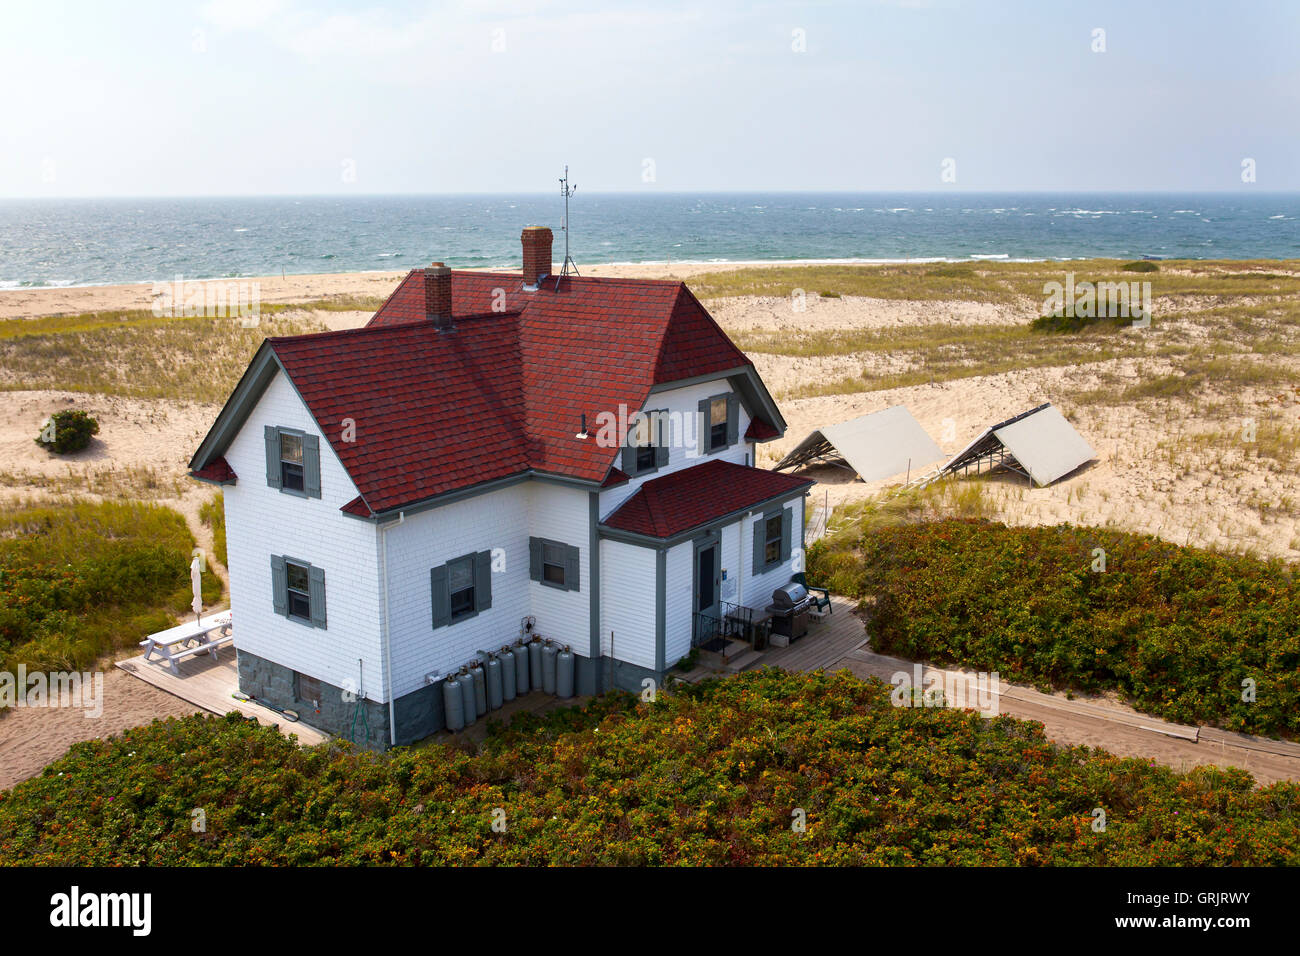 ma listings cottages provincetown village of in photo commercial street